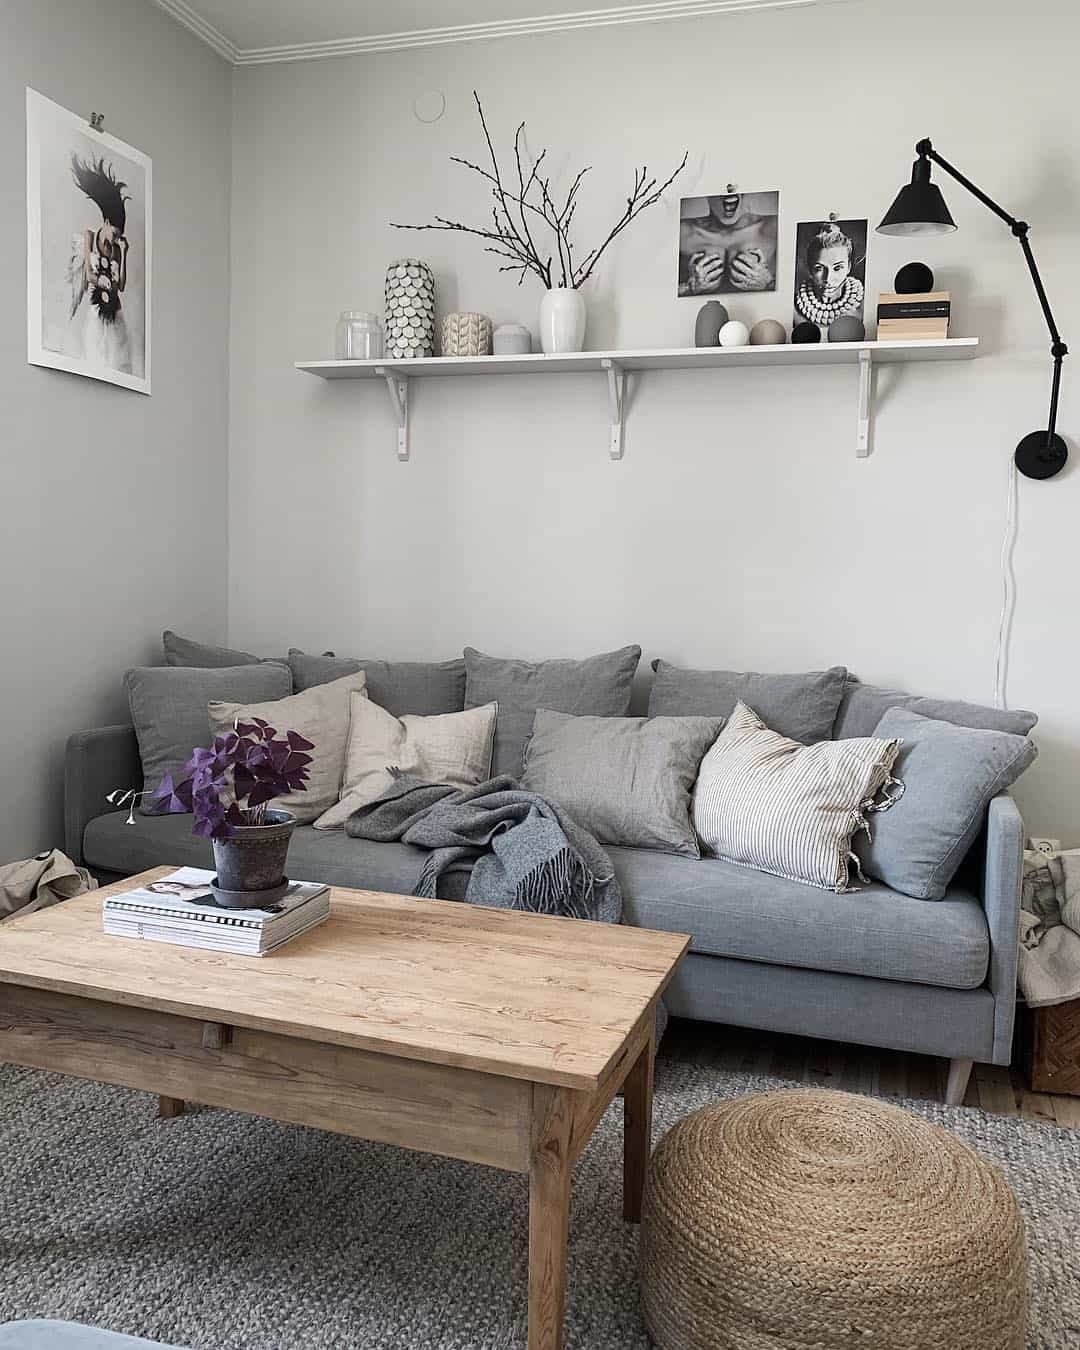 Top 4 Stylish Trends and Ideas For Living Room 2020 (40 ... on Trendy Room  id=39659